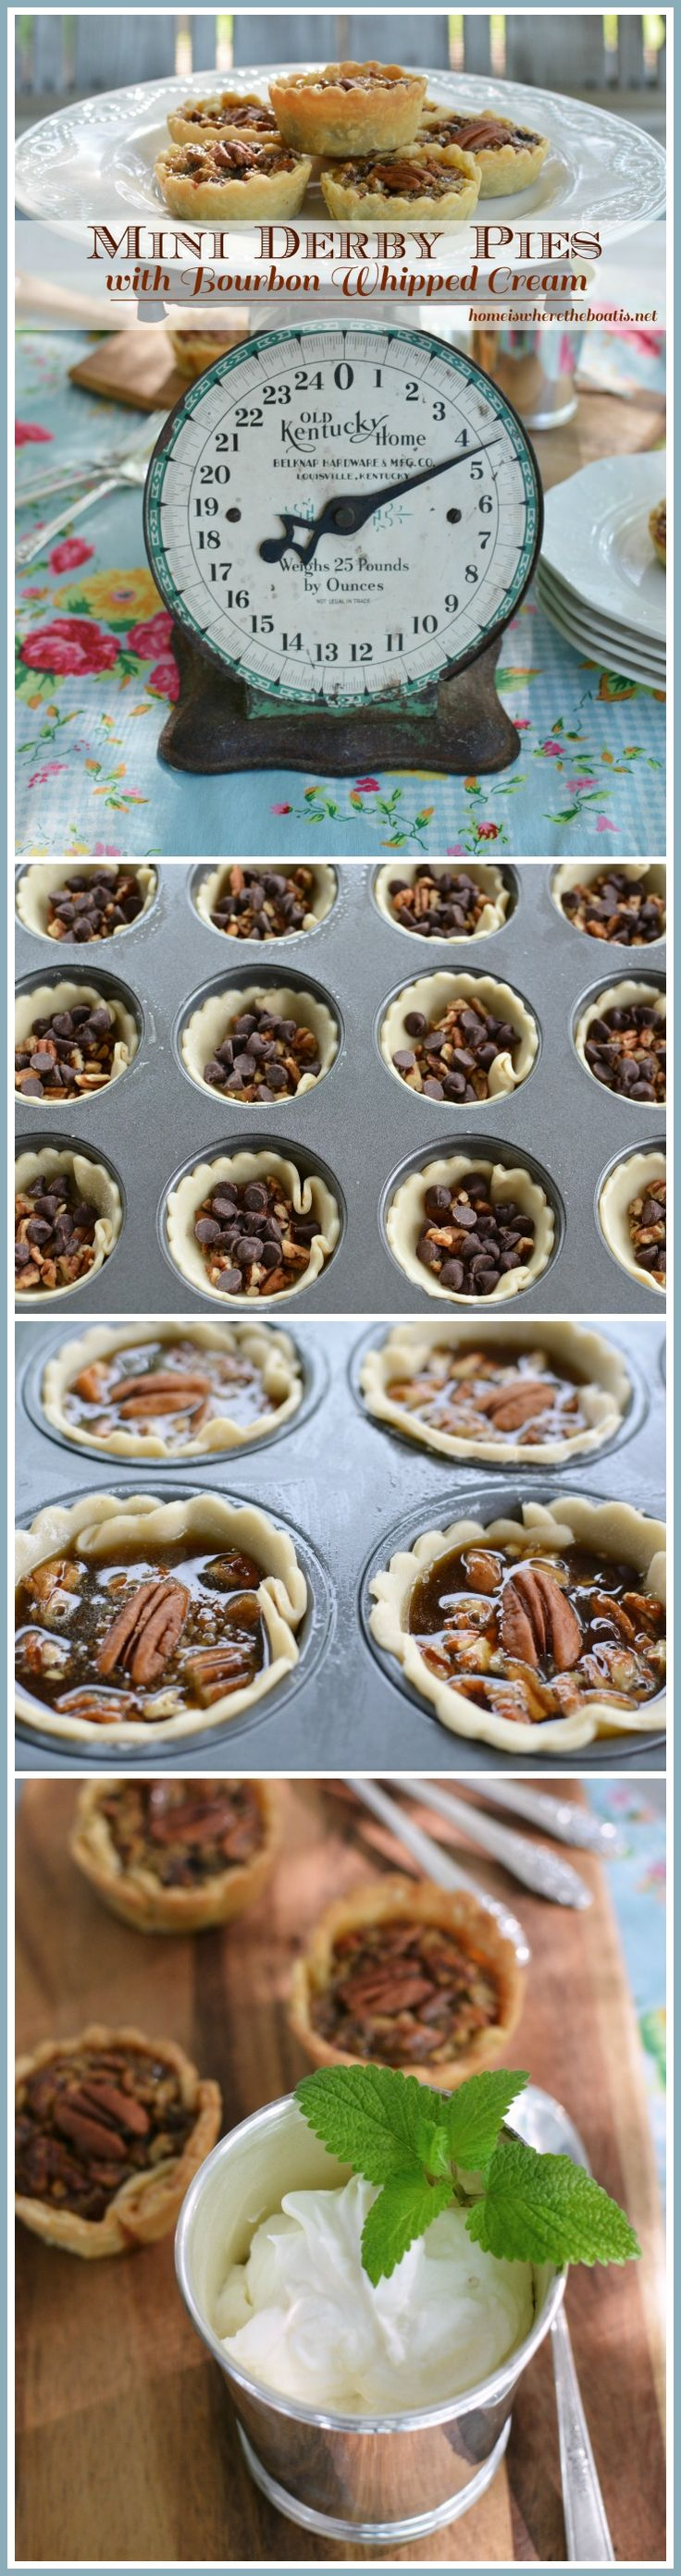 Mini Derby Pies with Bourbon Whipped Cream   homeiswheretheboatis.net #KentuckyDerby #dessert #recipe #muffintin